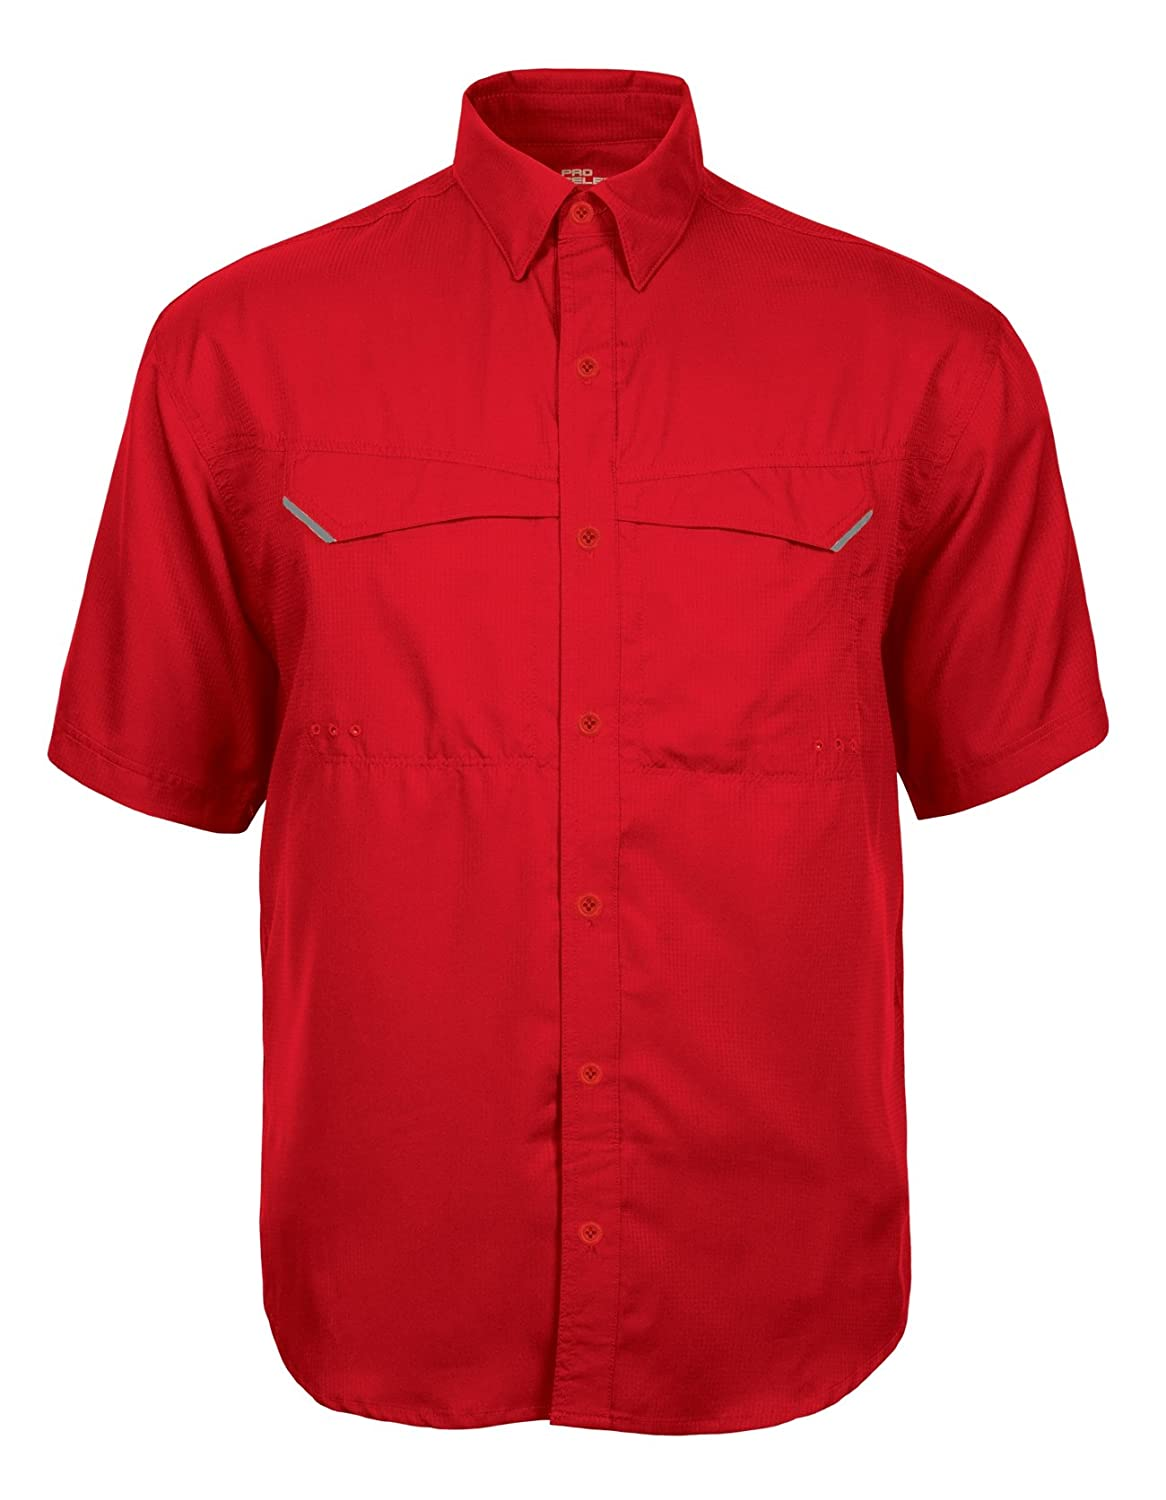 Pro Celebrity Mens Pro Fishing Outdoor Button-Down Shirt